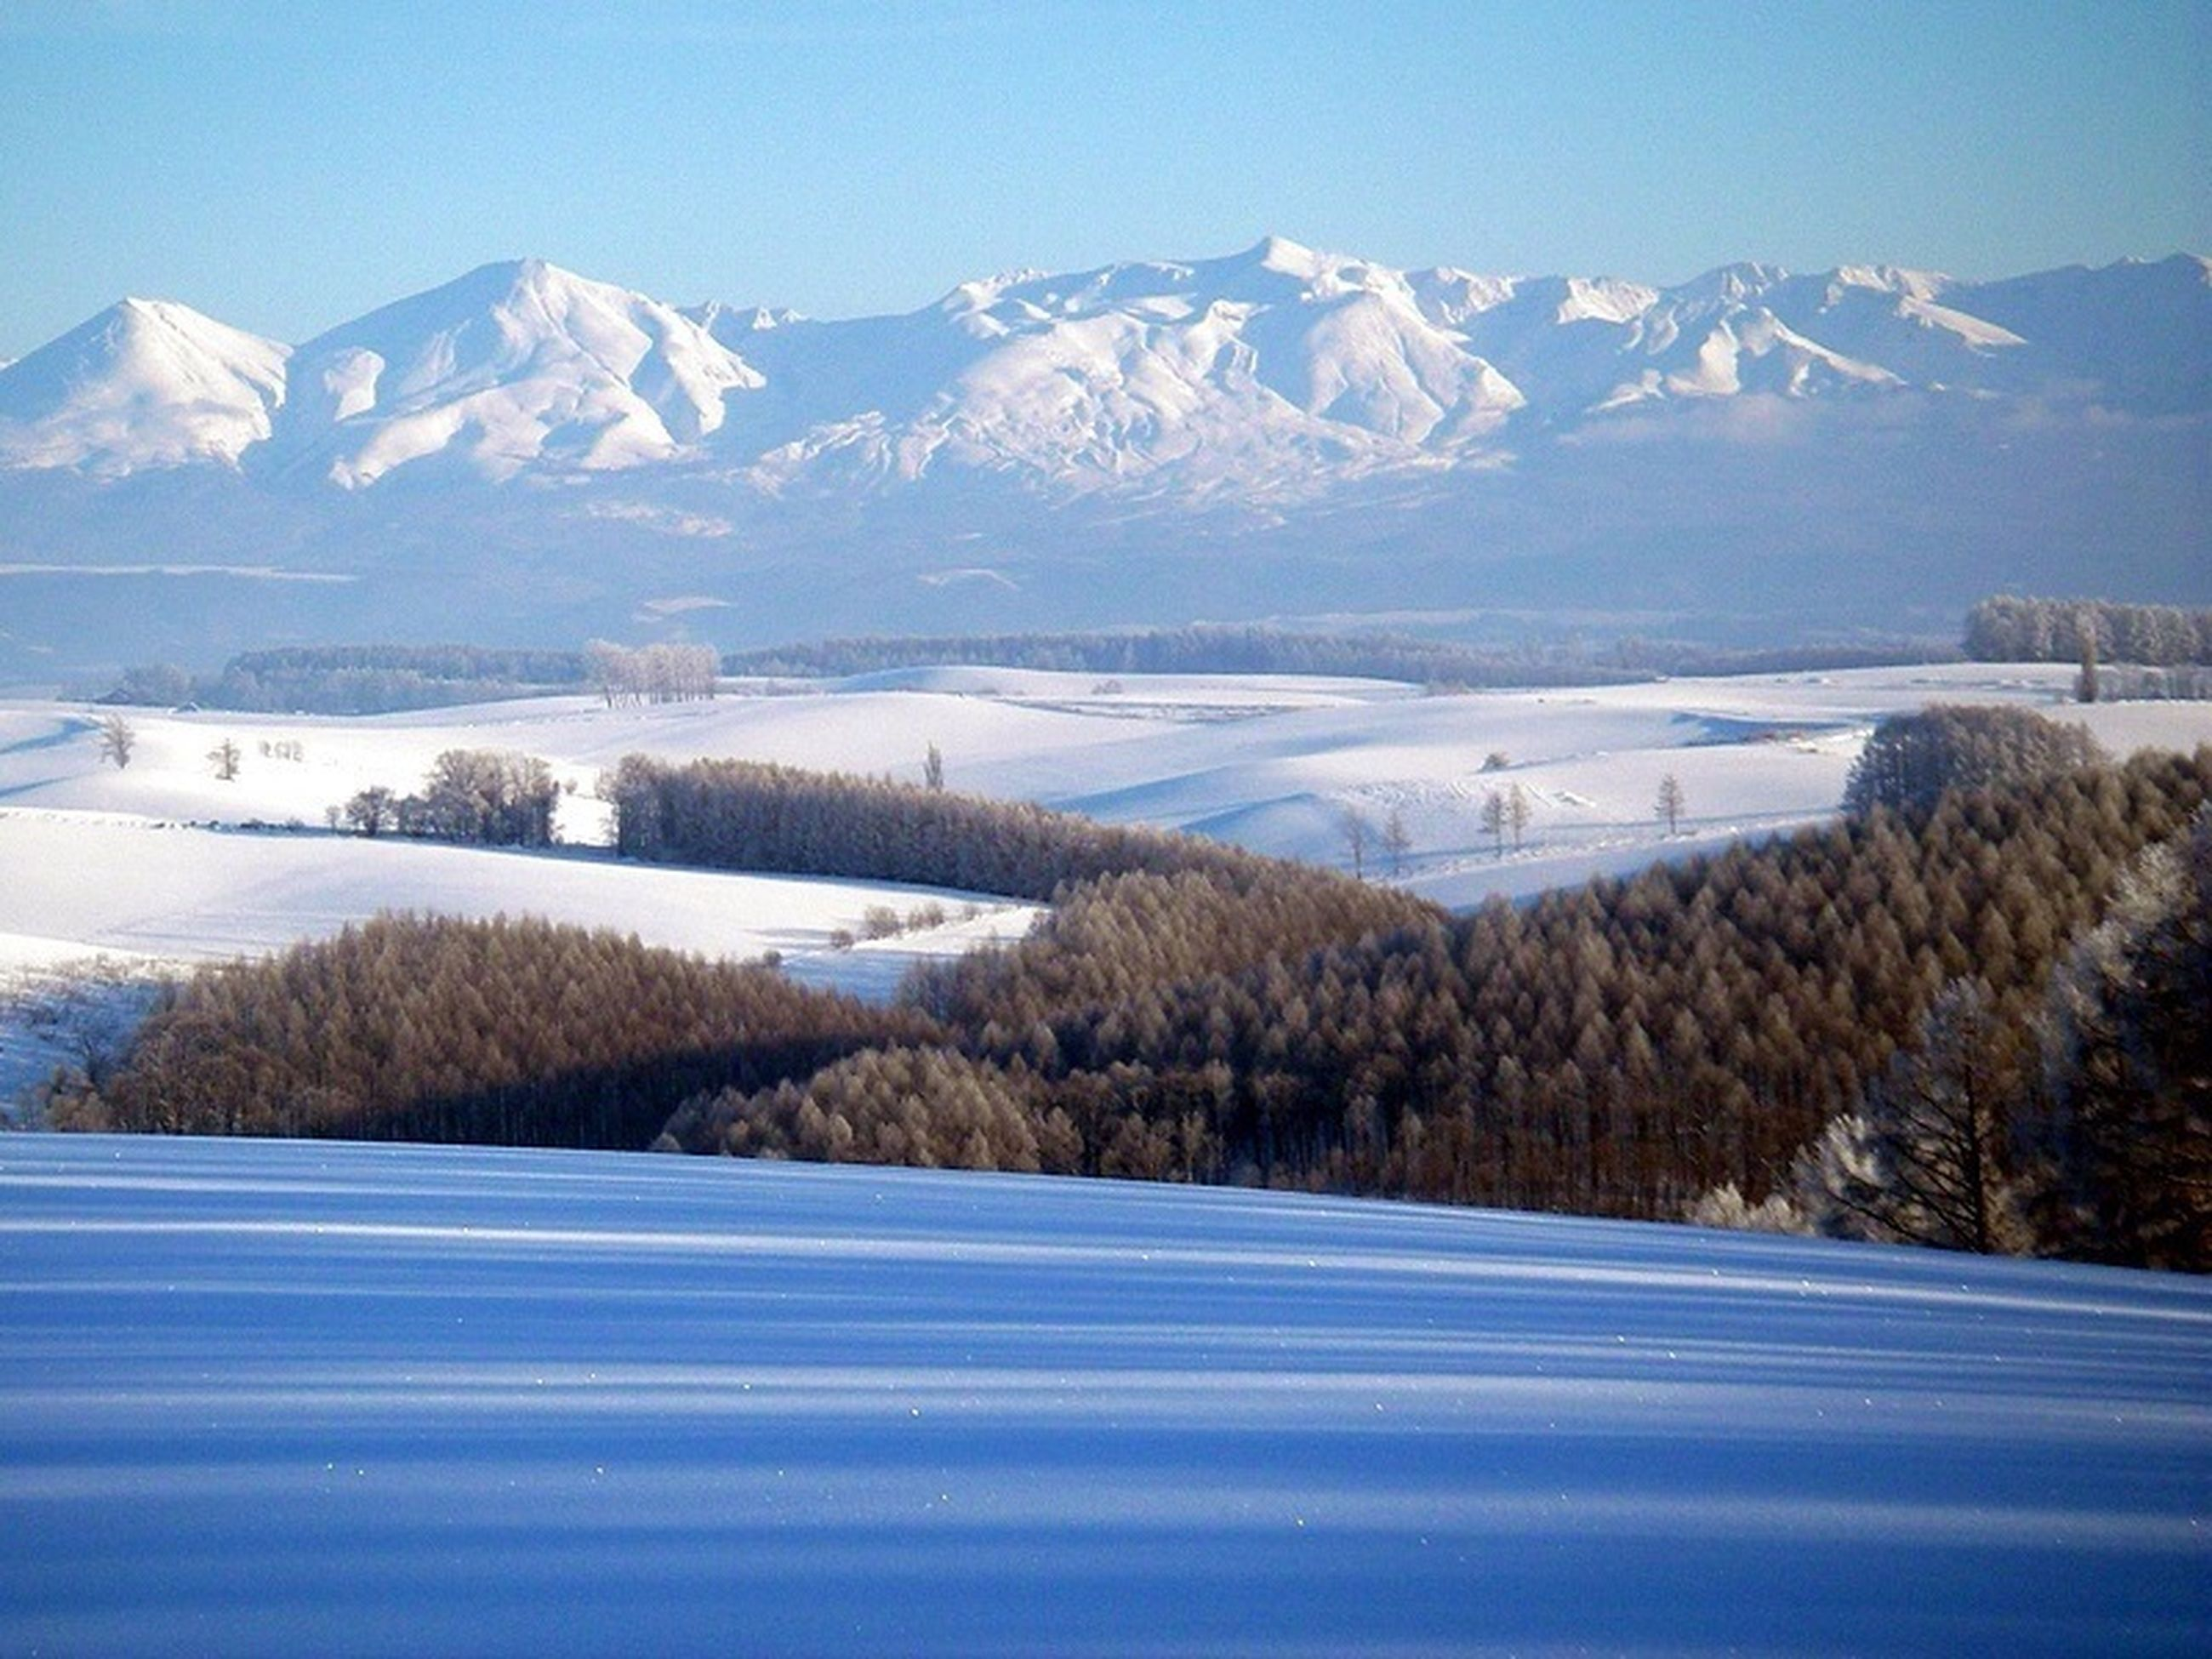 snow, winter, cold temperature, season, mountain, weather, snowcapped mountain, frozen, tranquil scene, covering, tranquility, mountain range, scenics, beauty in nature, landscape, nature, lake, snowcapped, water, white color